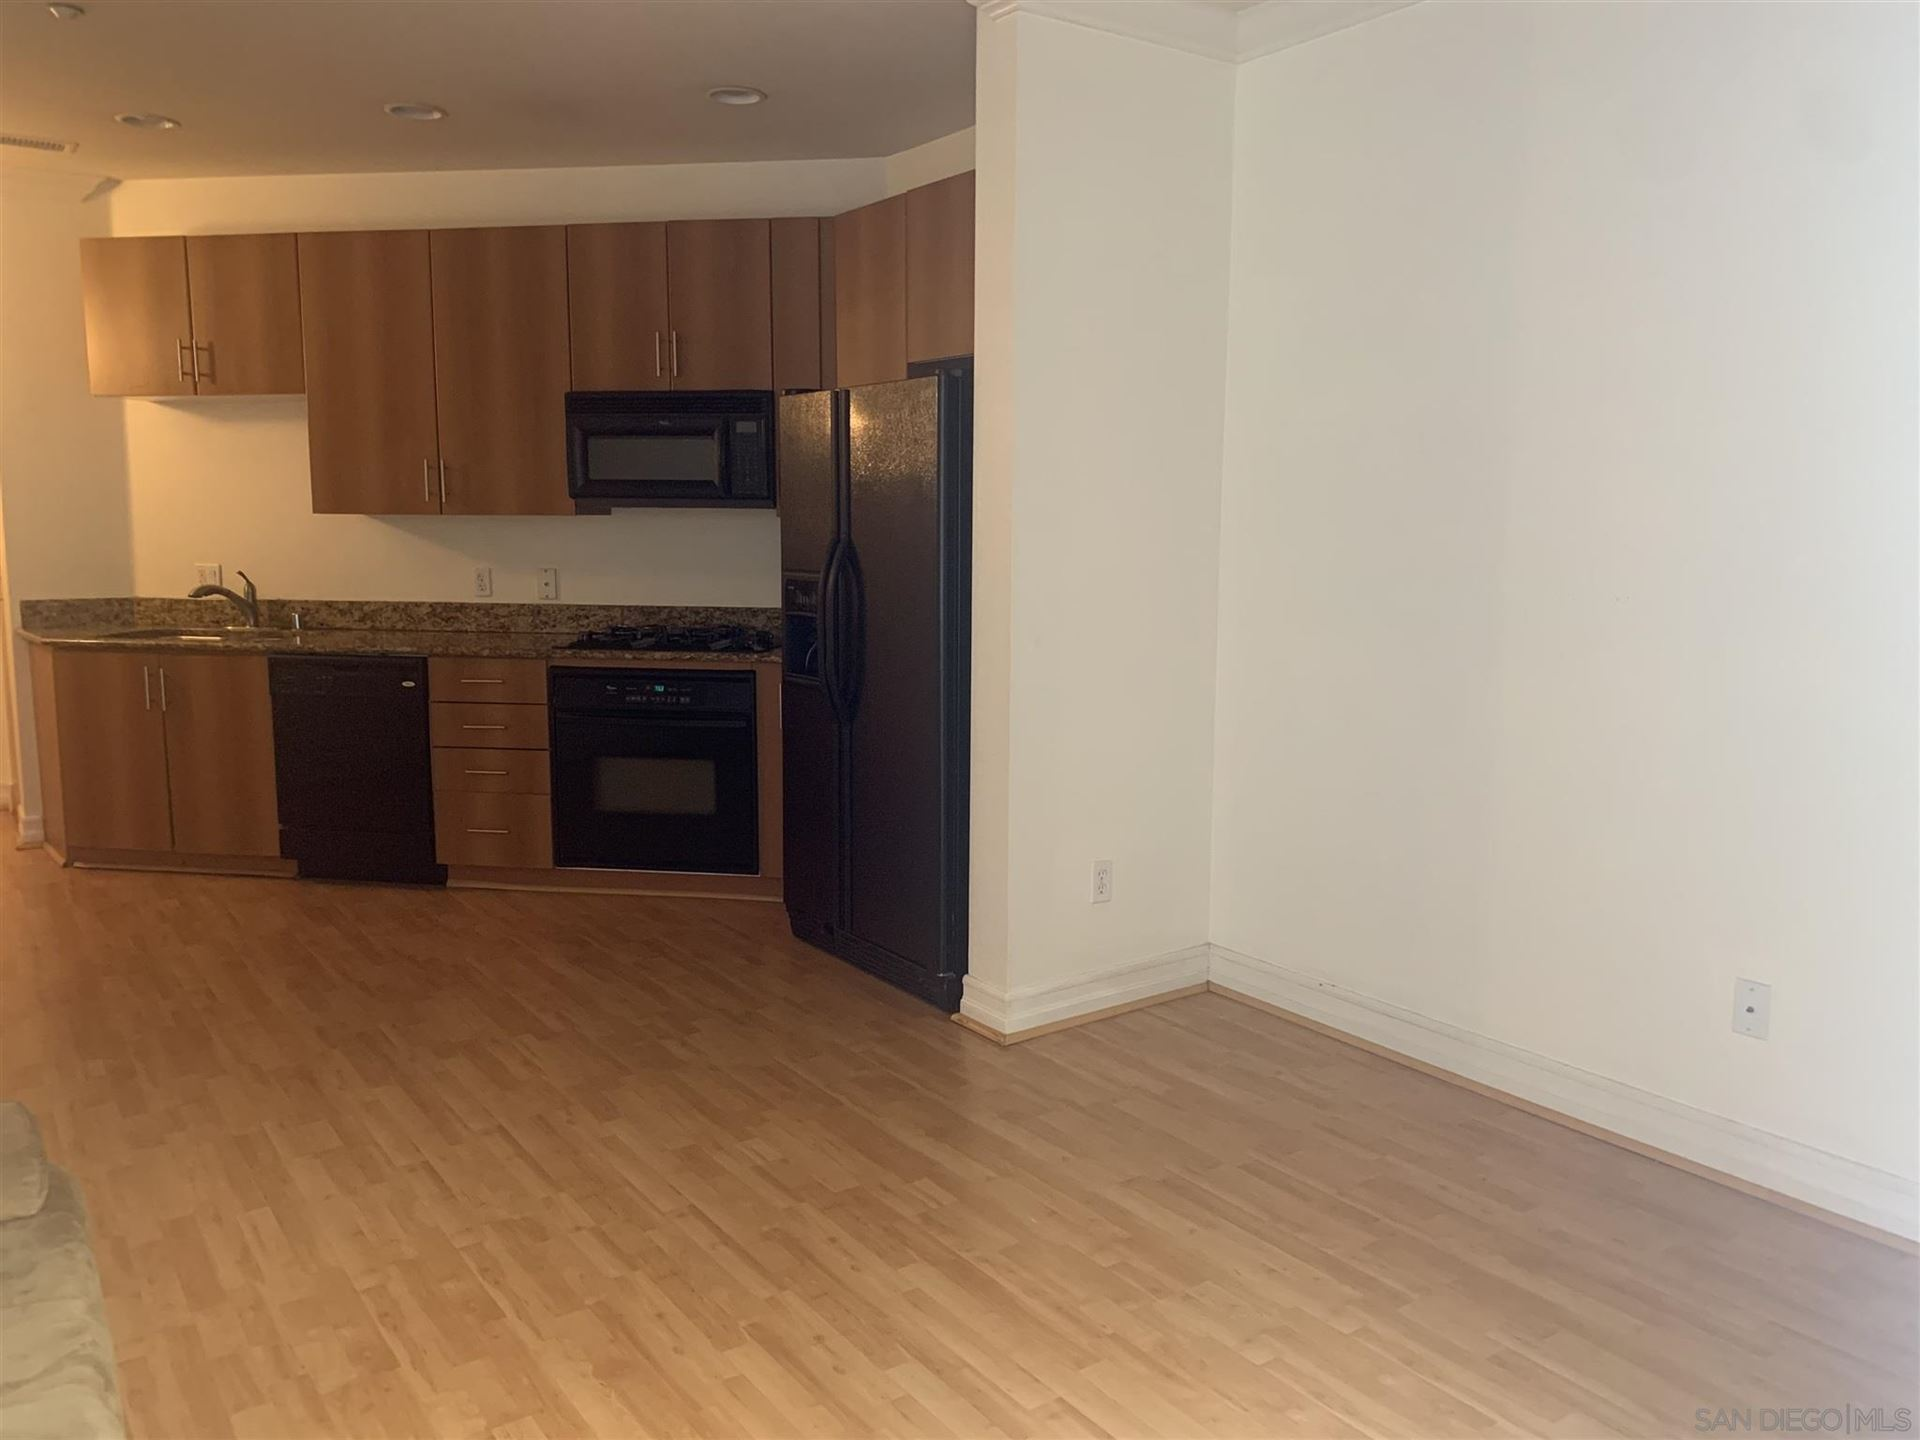 Photo of 1225 Island Ave #311, San Diego, CA 92101 (MLS # 200052544)